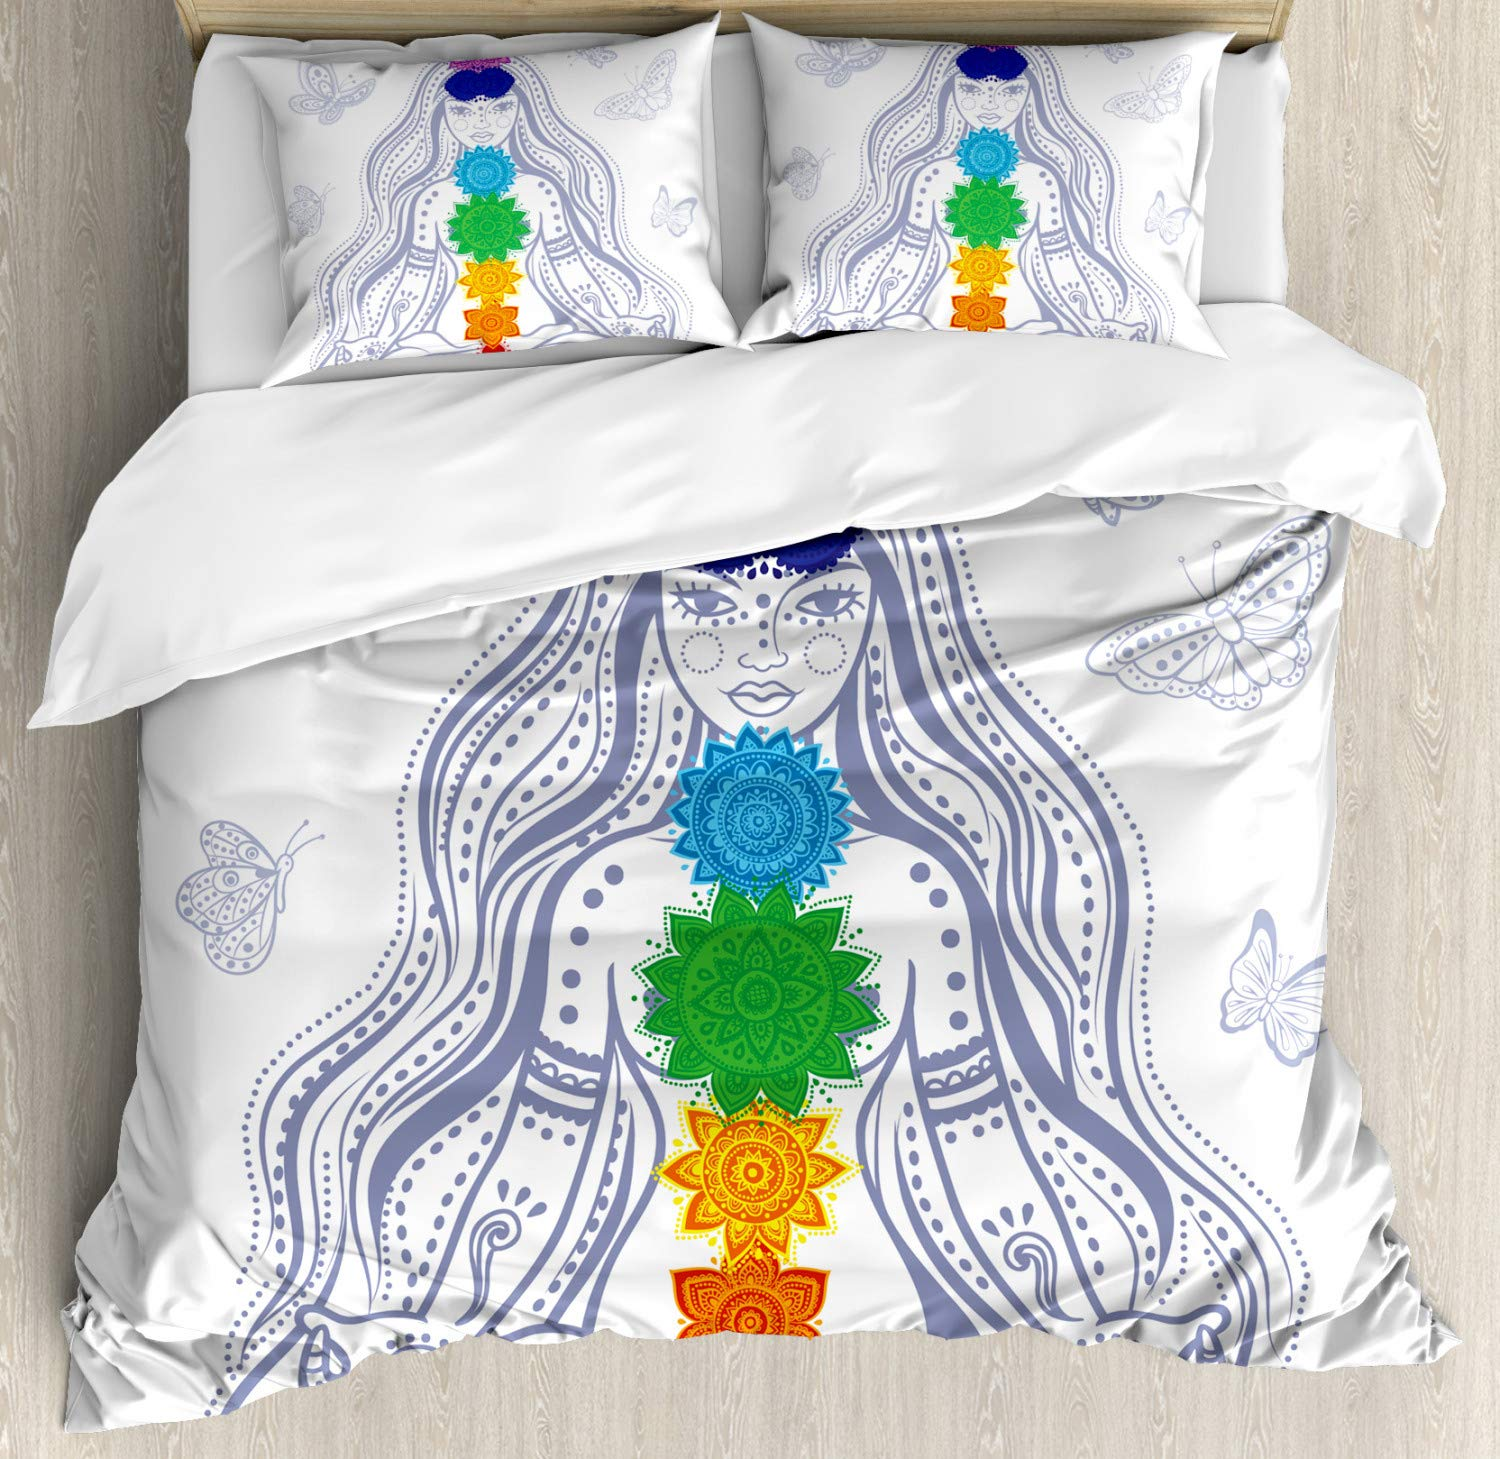 Decorative 3 Piece Bedding Set with 2 Pillow Shams Abstract Wave Design Ocean Themed Marine Life Pattern Print Blue Mint Green nev/_43041/_king Ambesonne Teal Duvet Cover Set King Size